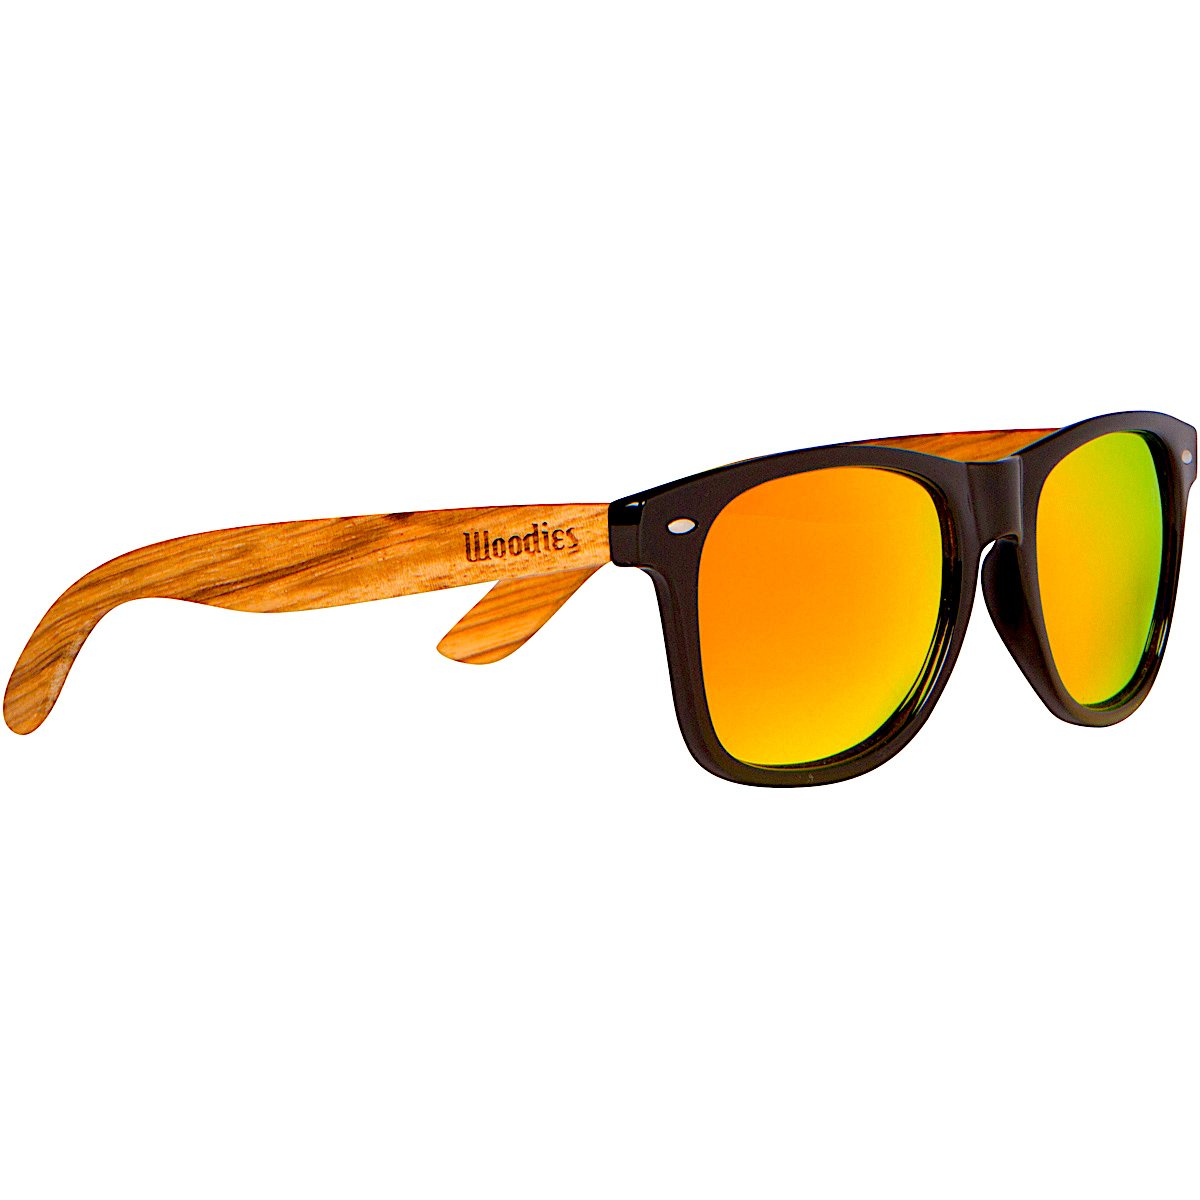 5d1db7478e1d0 WOODIES Zebra Wood Wayfarer Sunglasses with Orange Mirror Lens  Amazon.in   Clothing   Accessories